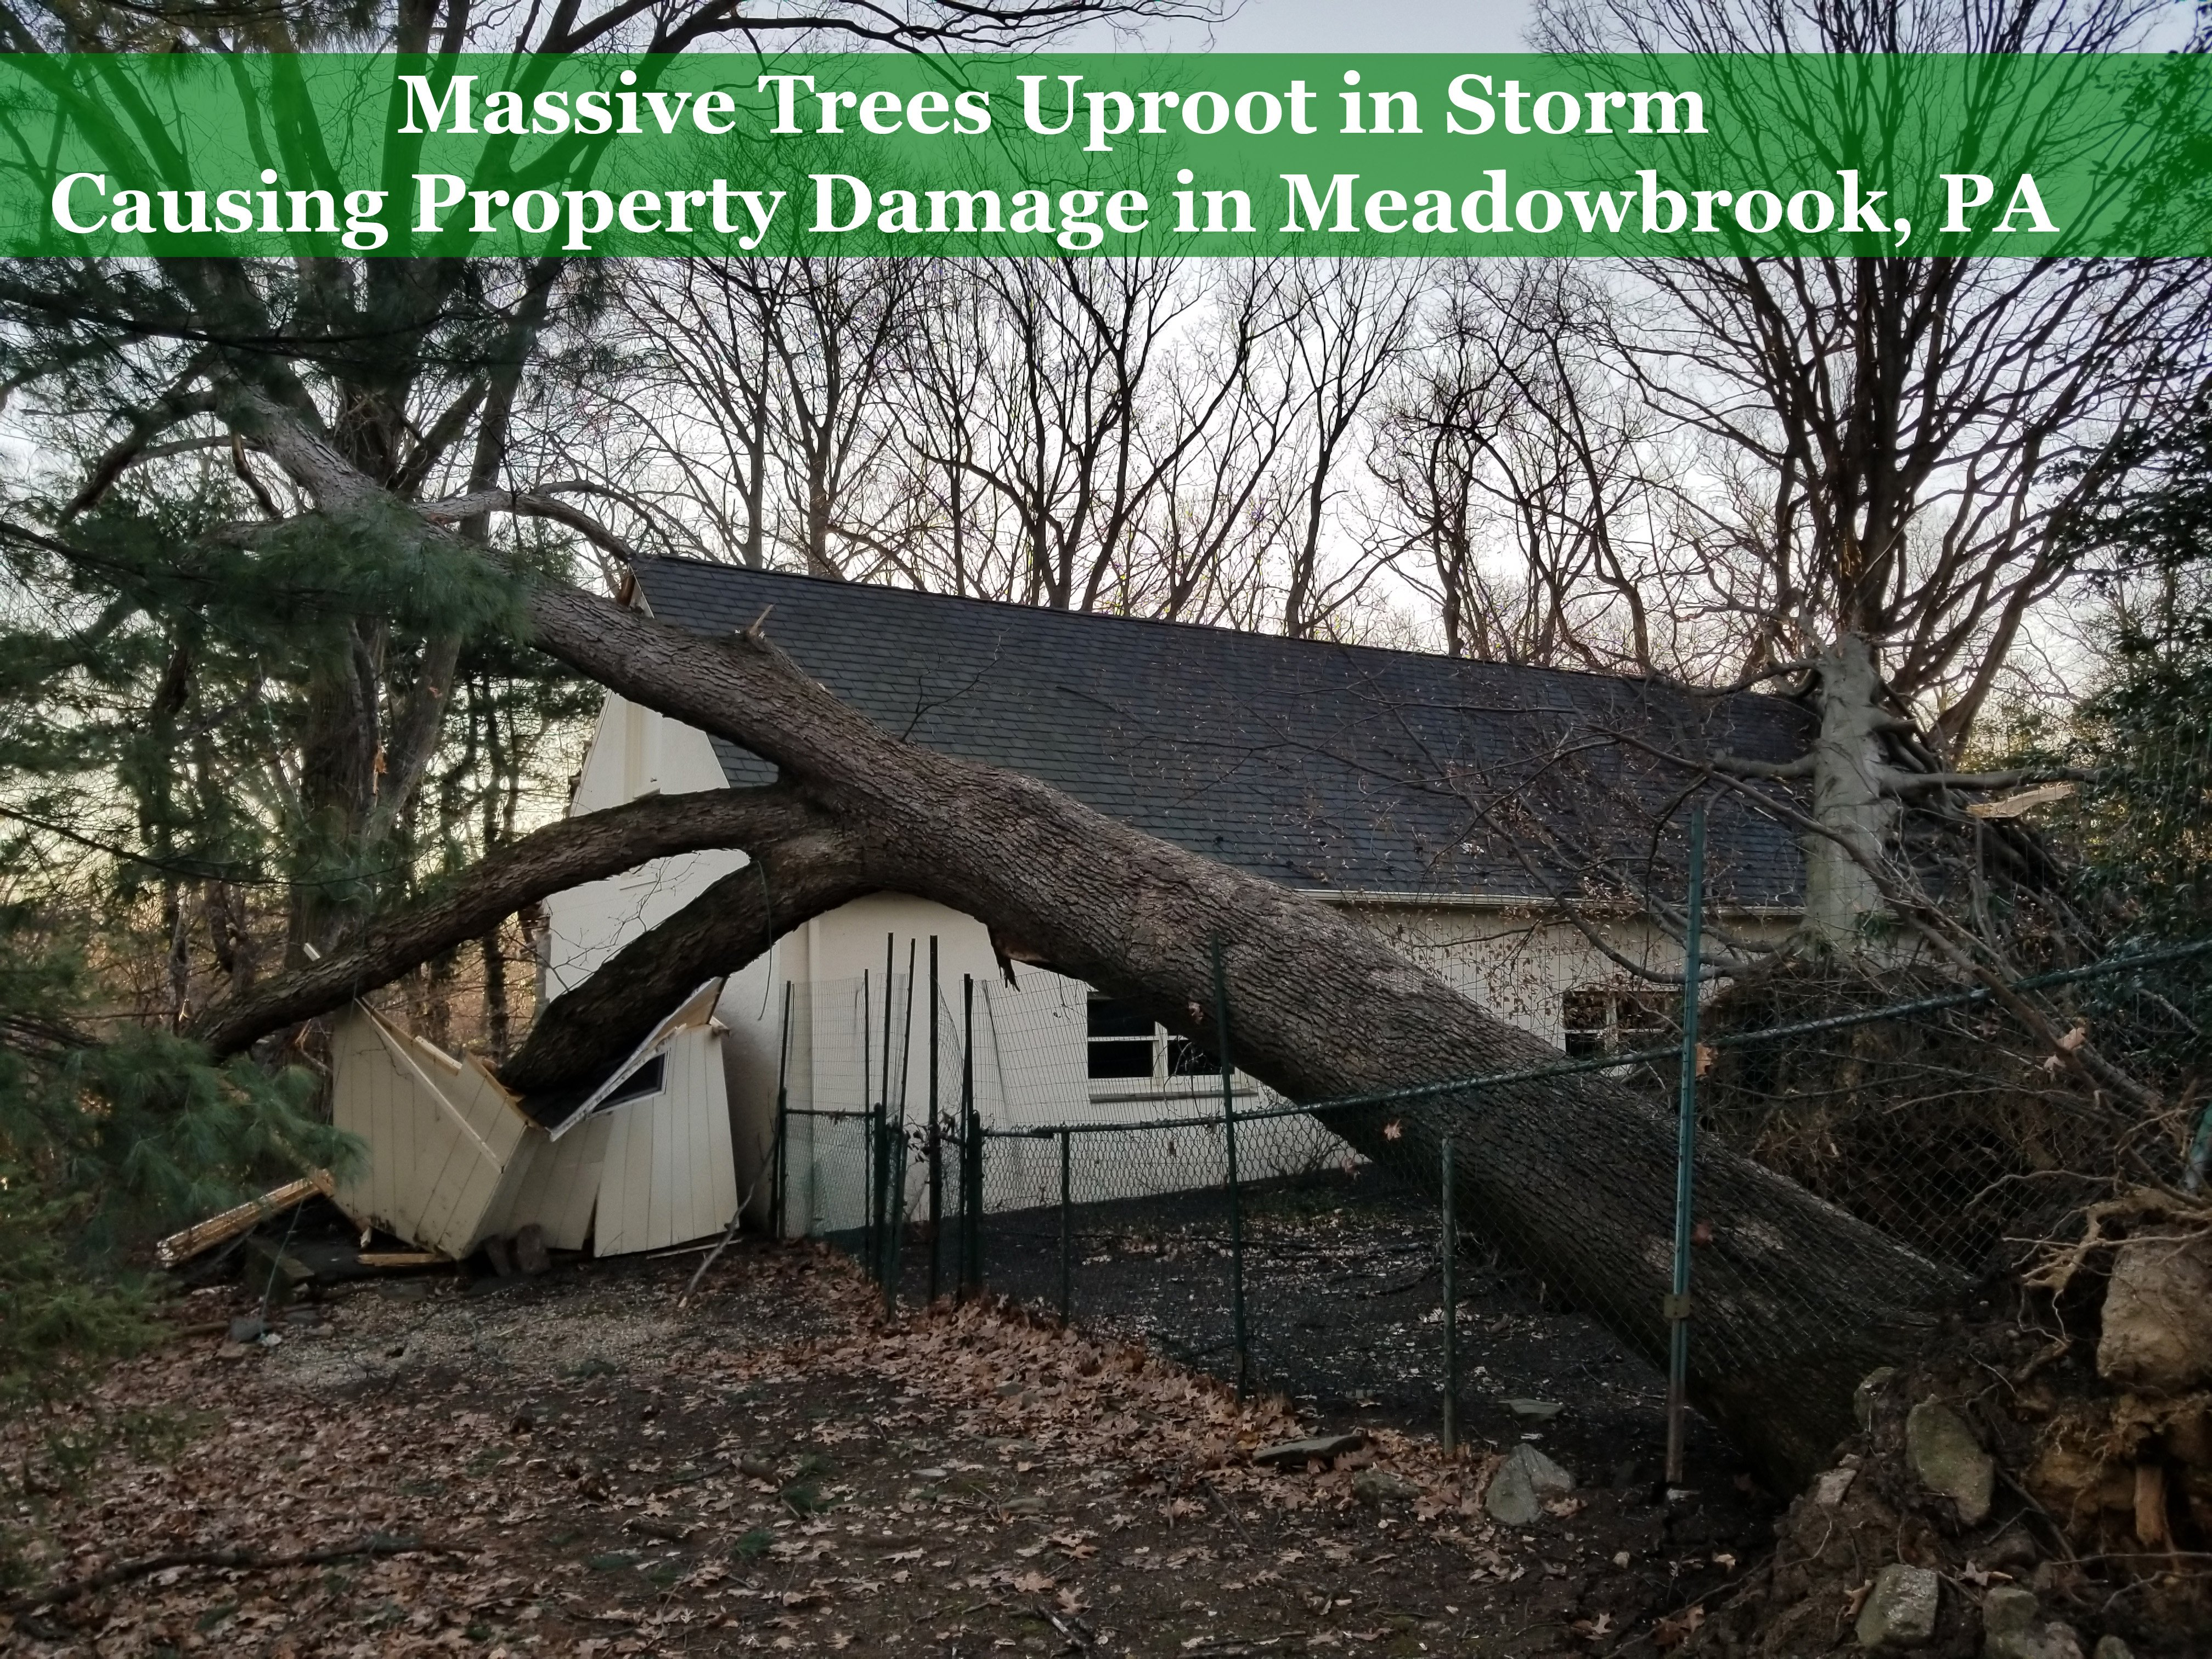 Massive Trees Uproot in Storm Causing Property Damage in Meadowbrook PA